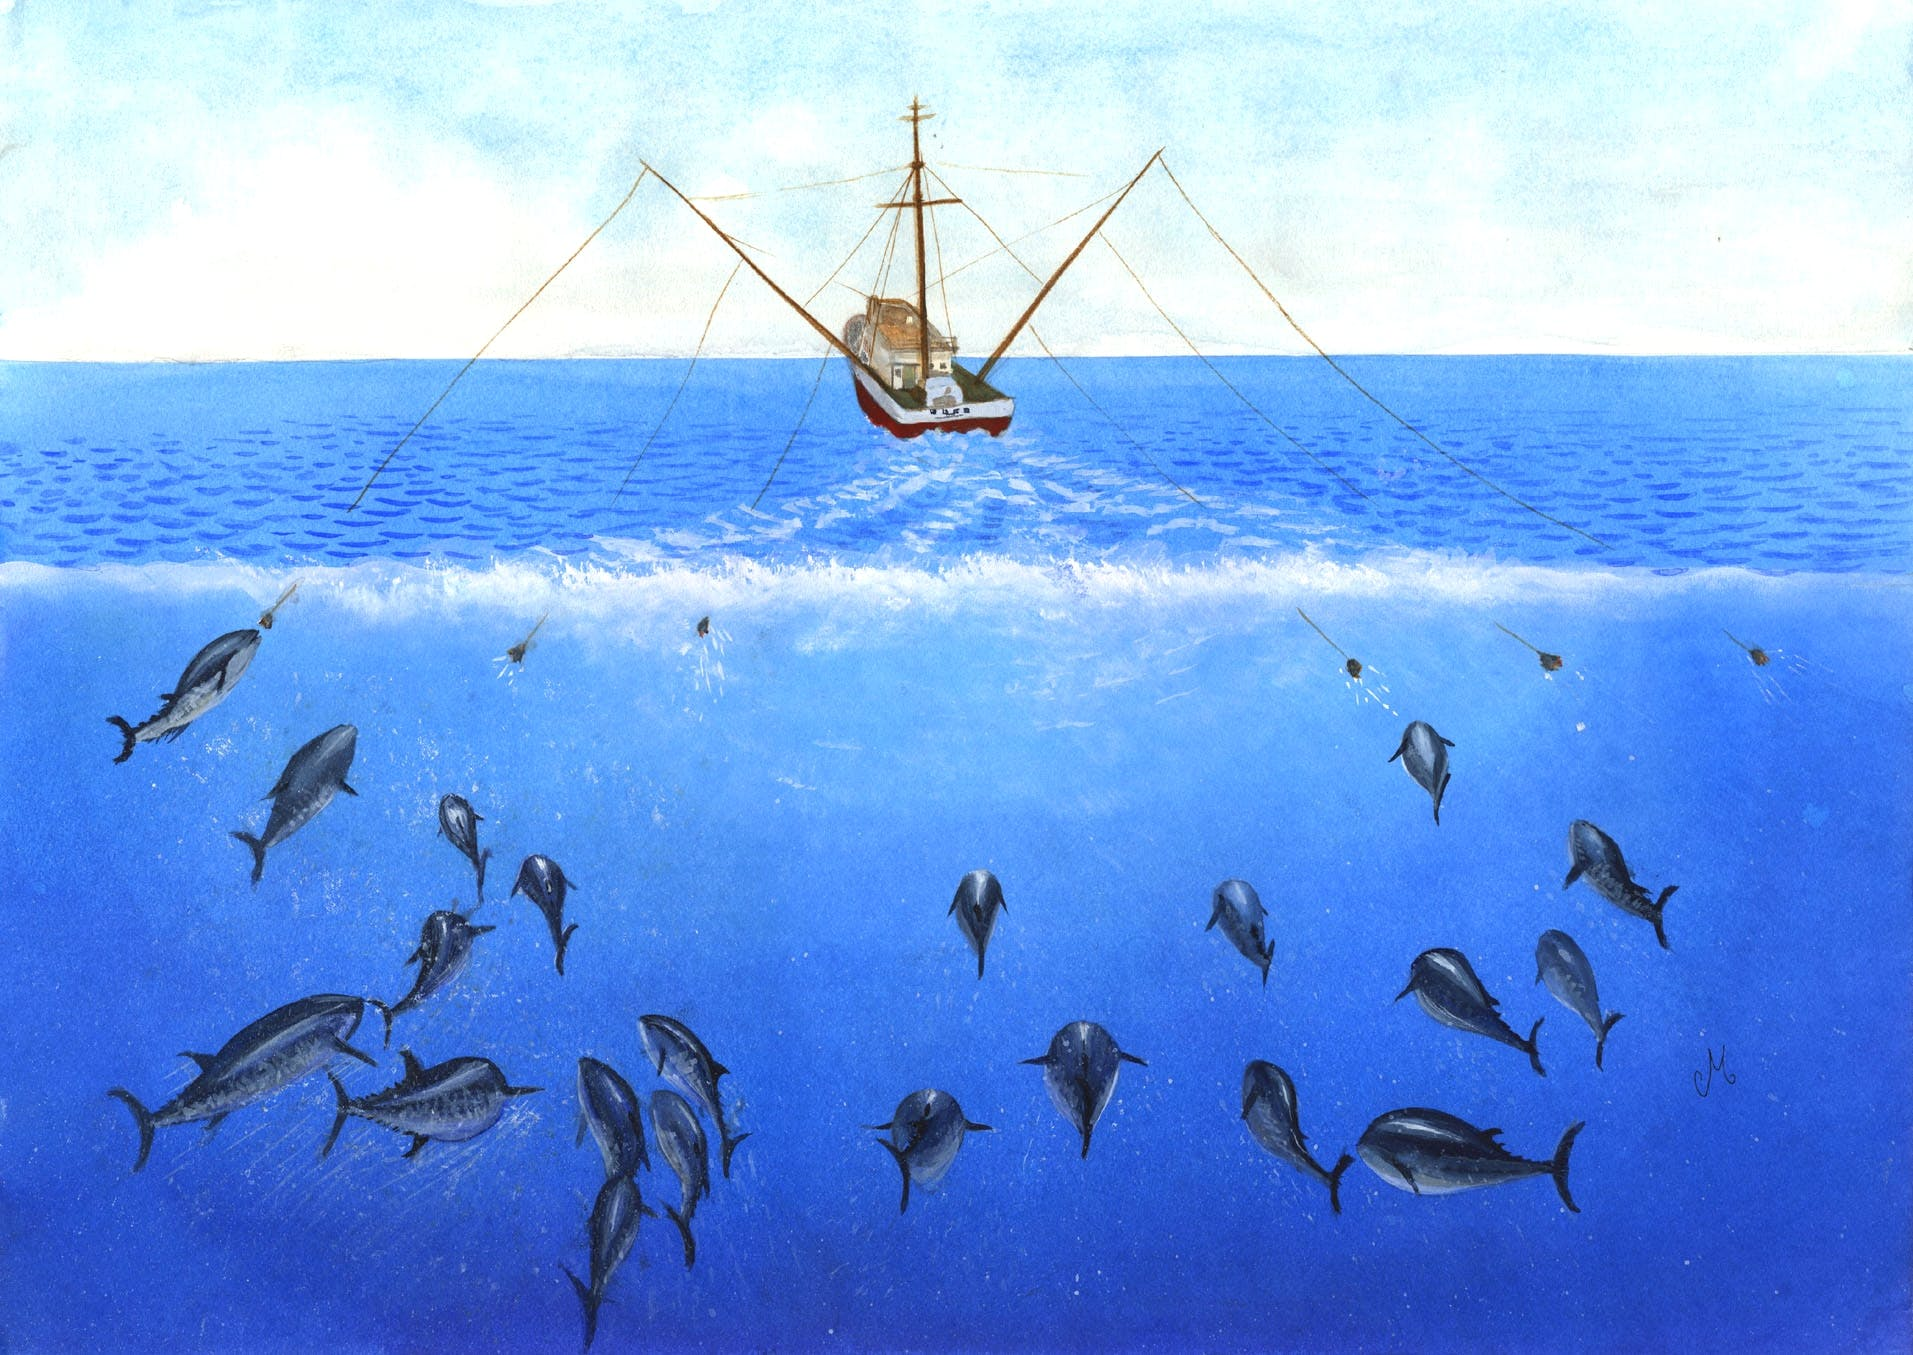 A painting of a fishing boat with multiple fishing lines catching tuna